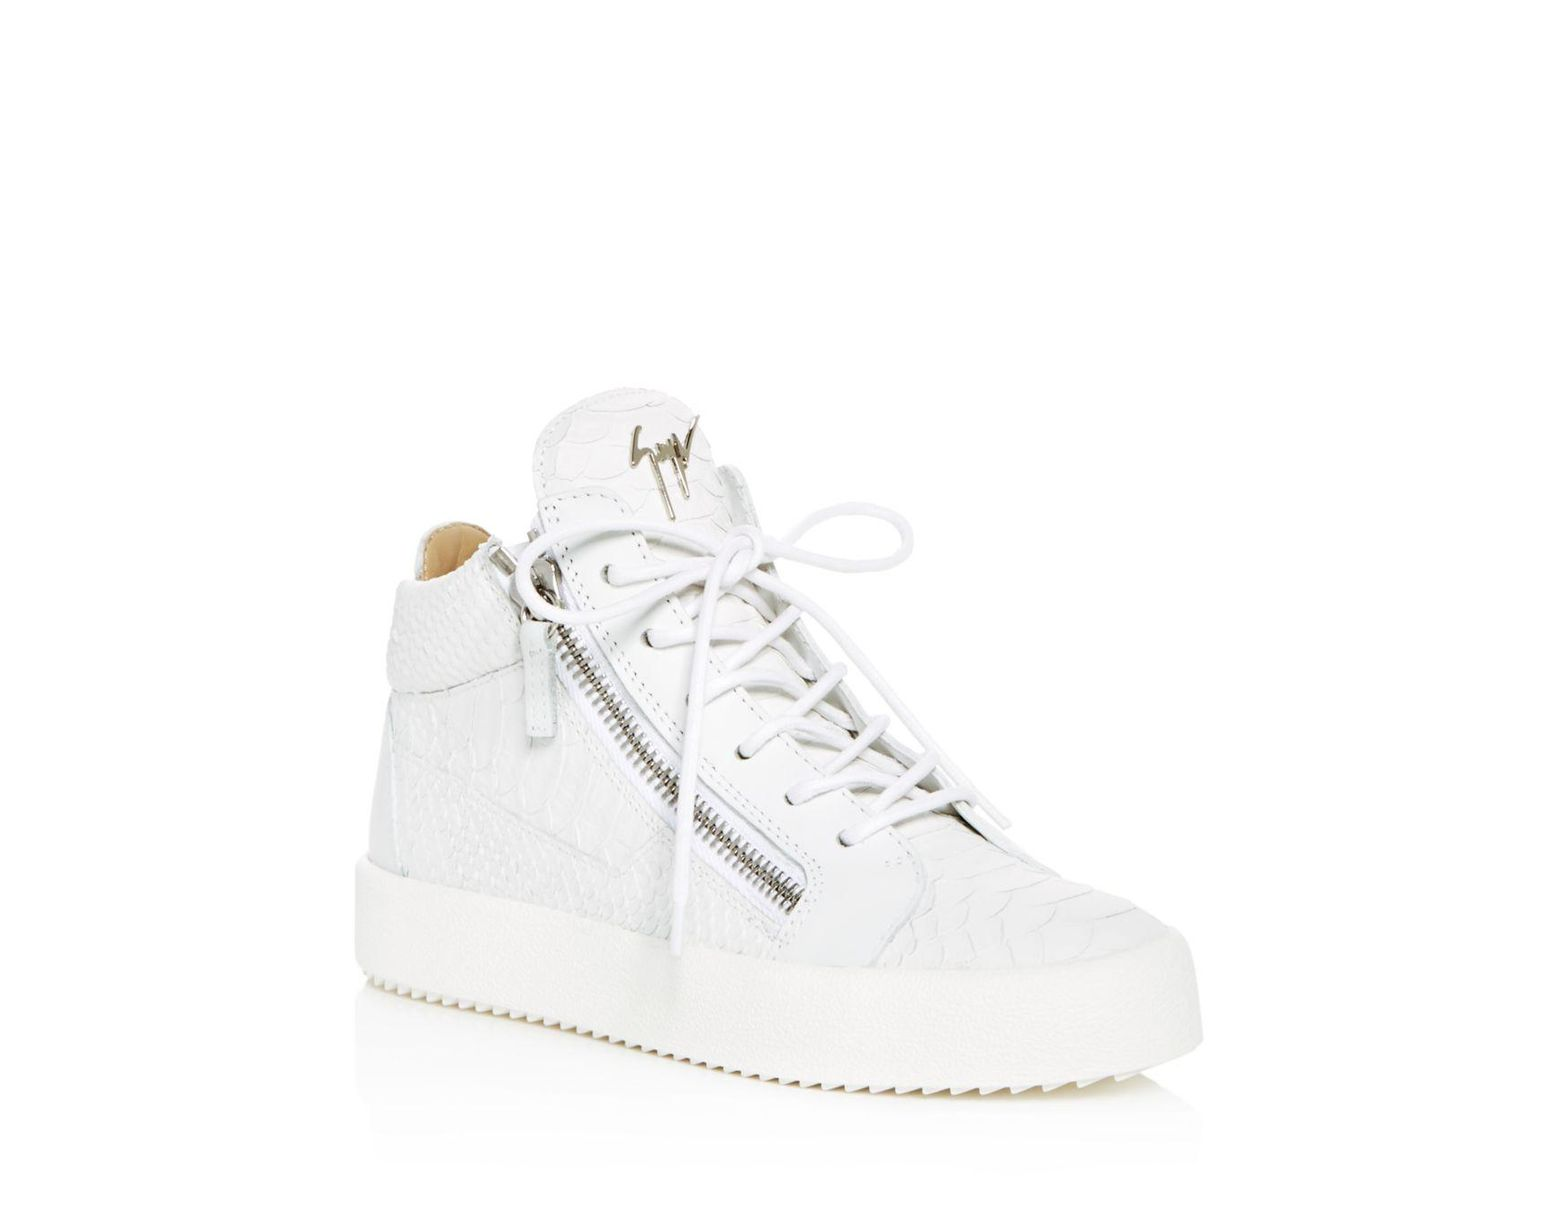 0a2465cb70c21 Giuseppe Zanotti Women's May London Snake & Croc Embossed Leather High Top  Sneakers in White - Lyst